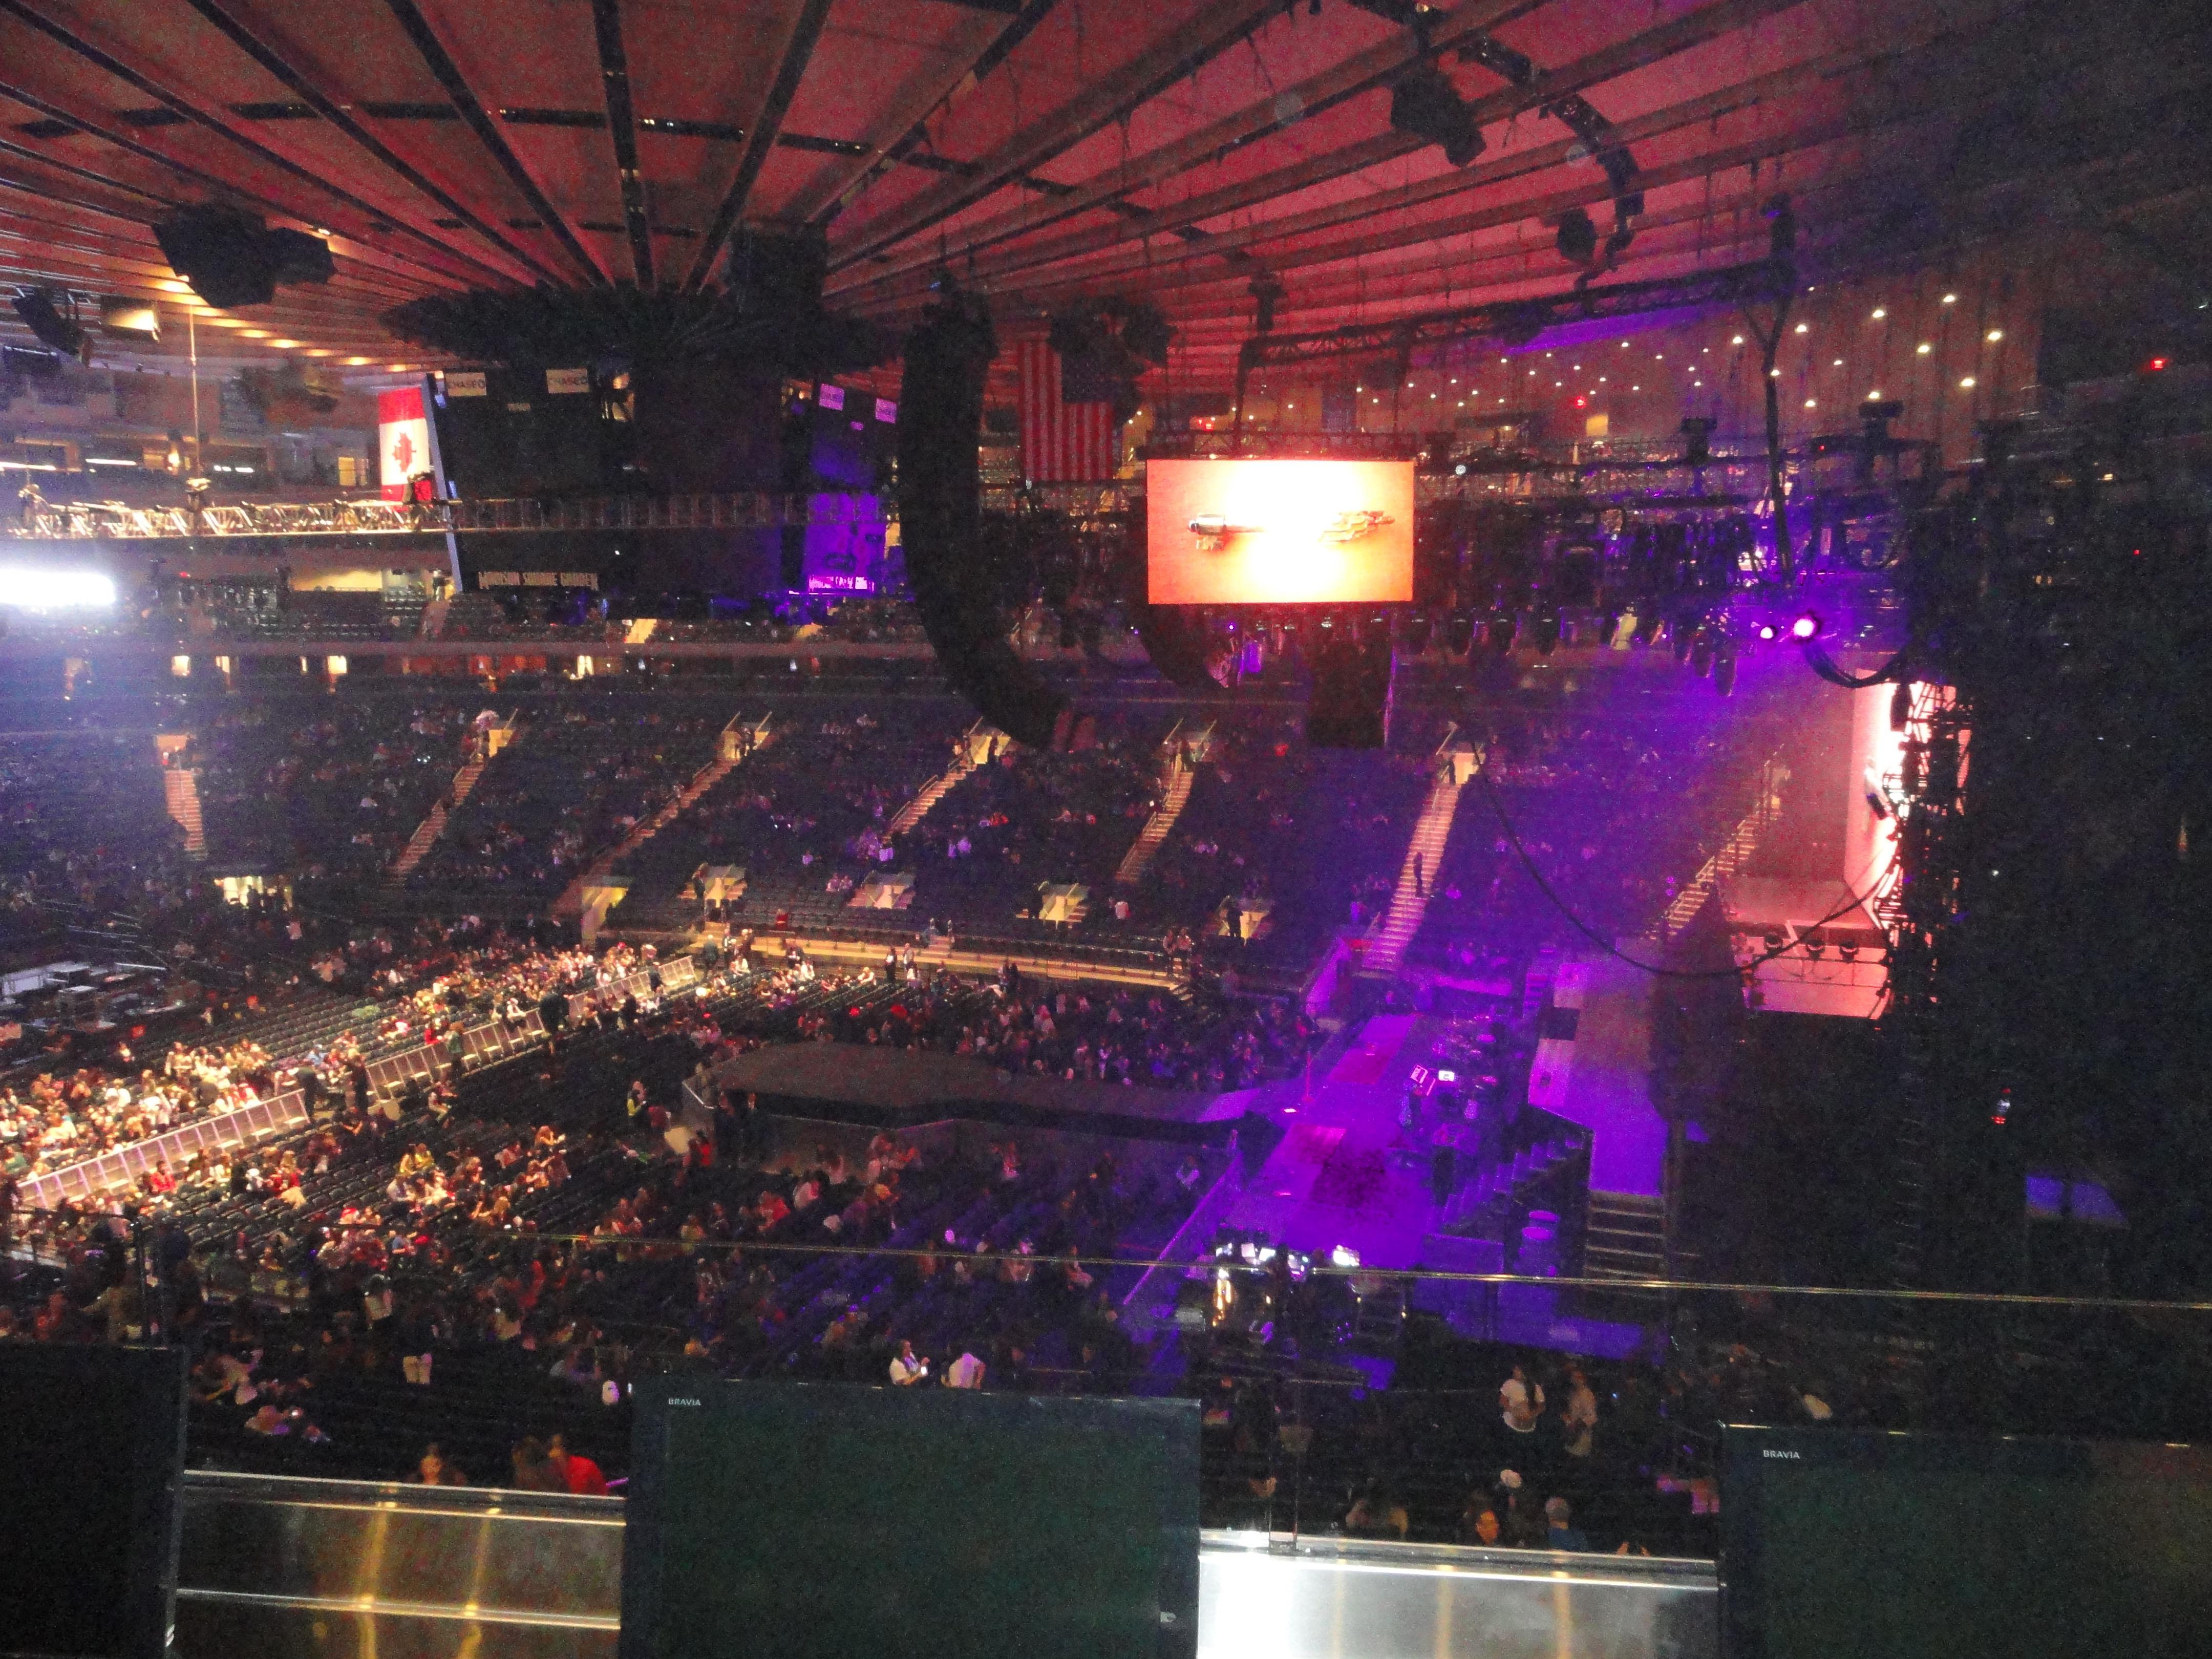 Madison Square Garden Section 213 Row 2 Seat 13 Justin Bieber Vs Believe Tour Shared By Jcplasha